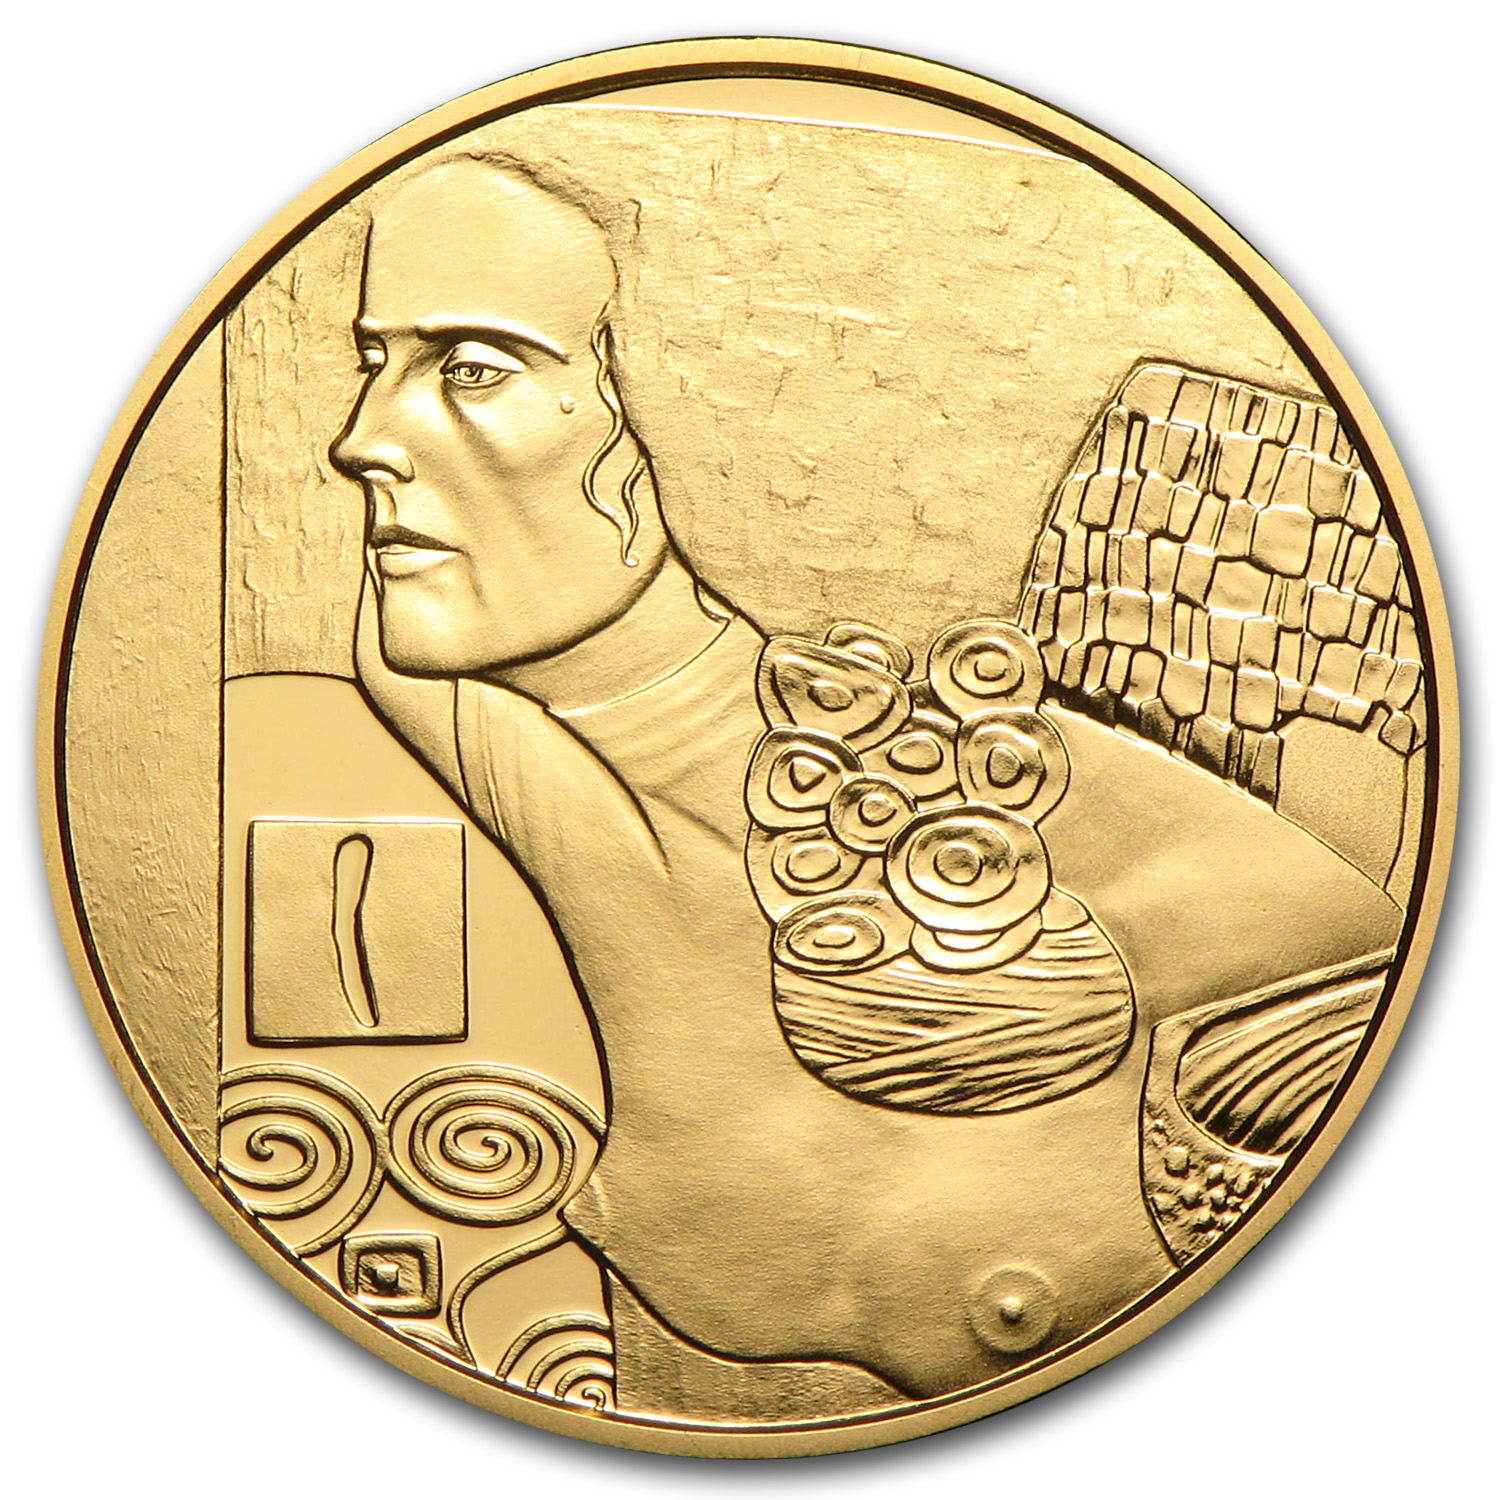 2014 Austria Gold Proof €50 Klimt Series (Judith II)